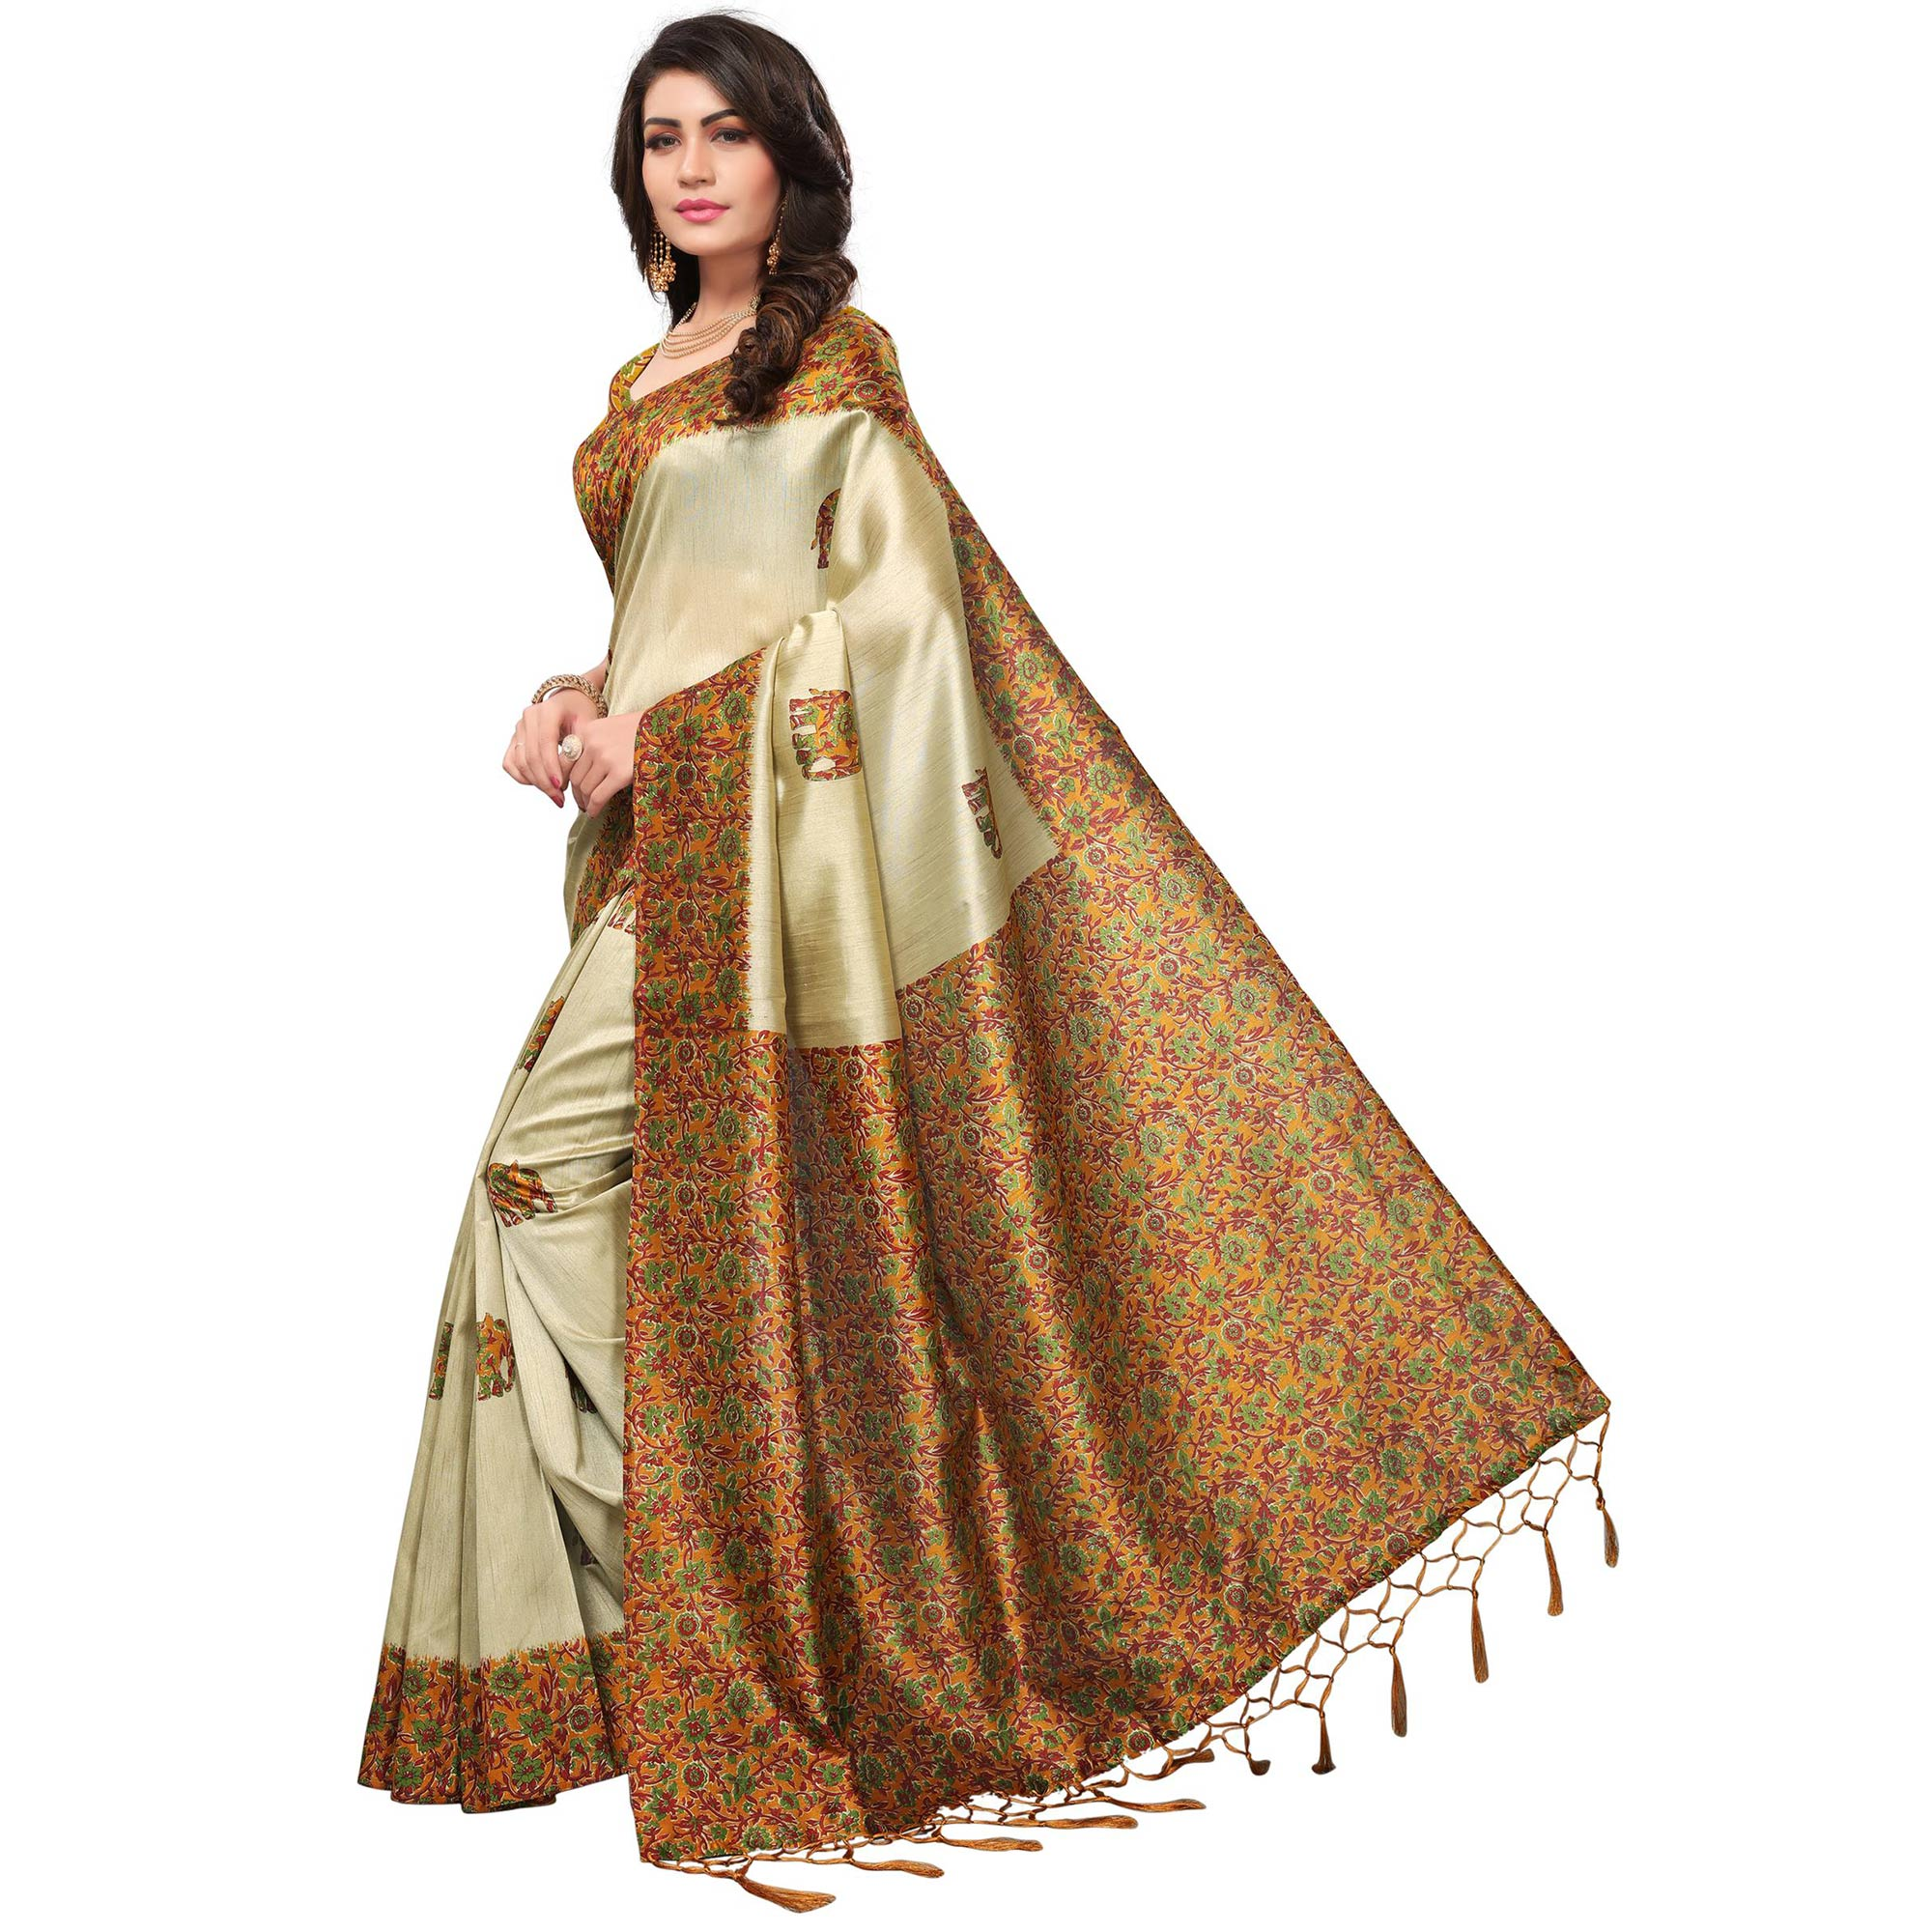 Appealing Cream-Yellow Colored Festive Wear Printed Silk Saree